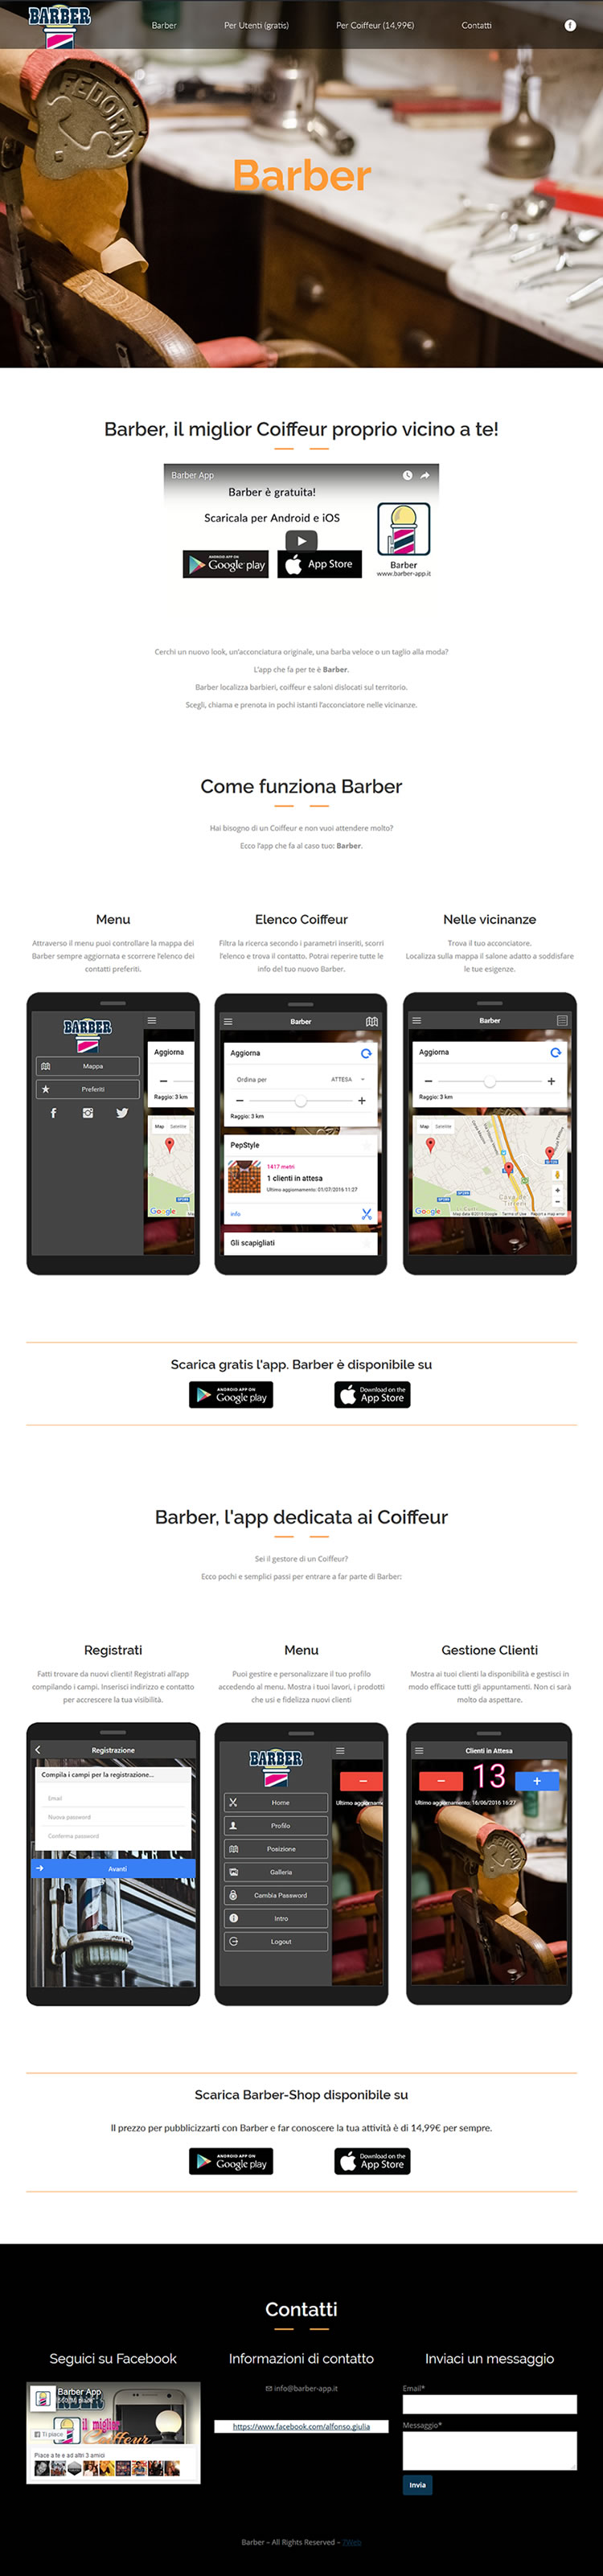 Barber App per coiffeur - App Mobile Android e iOS